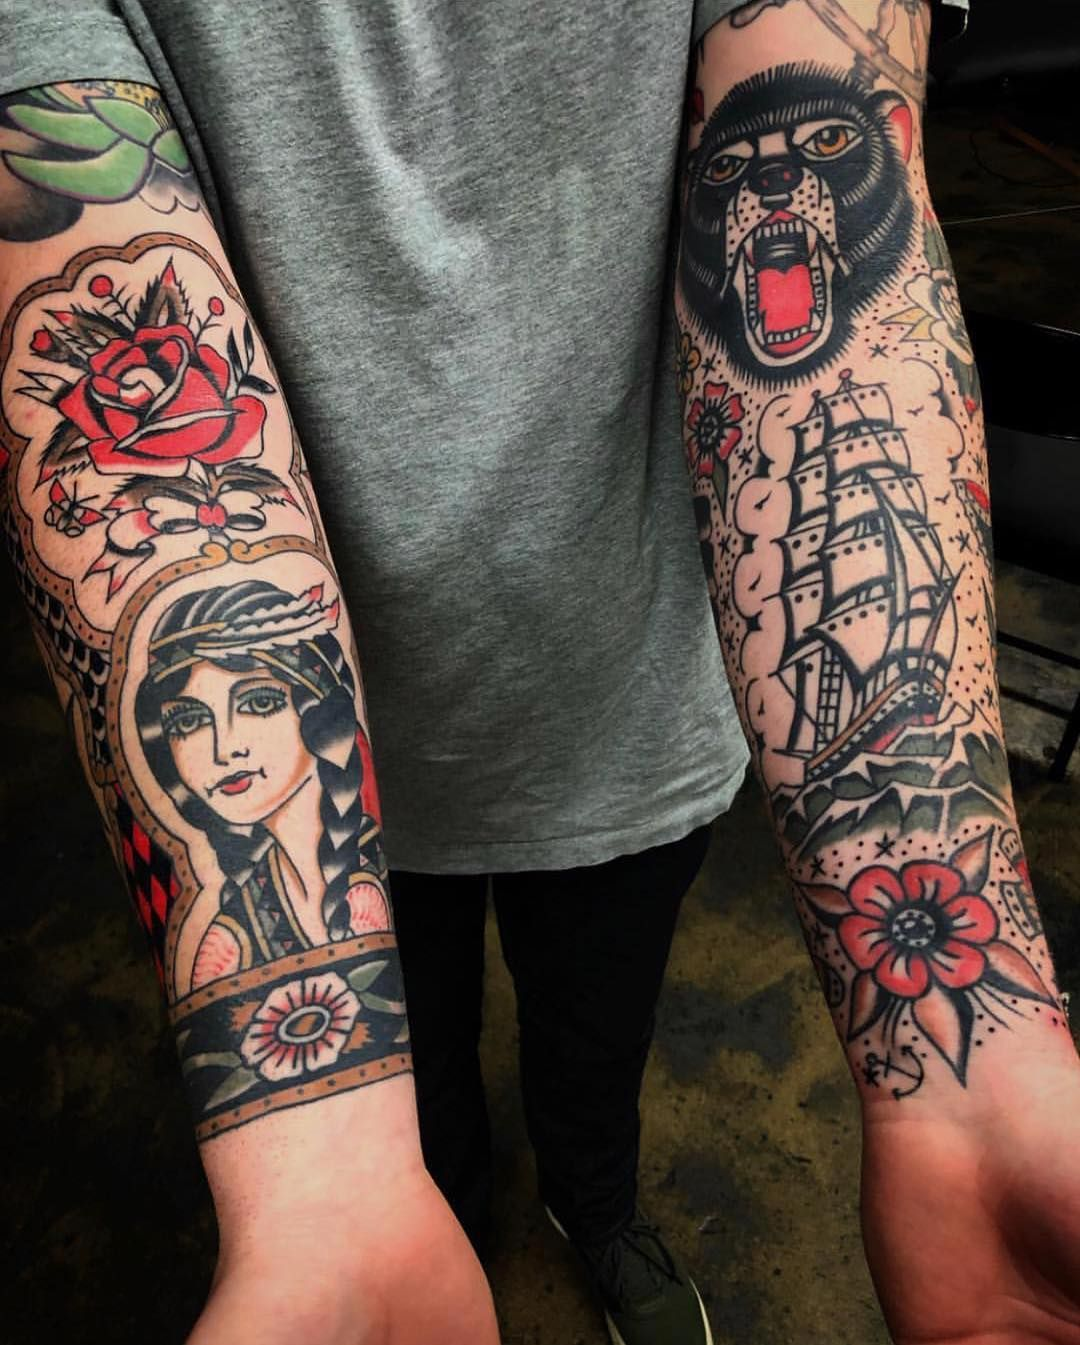 Traditional Forearm Tattoo : traditional, forearm, tattoo, Traditionalartist, #tattoo, @zackdeaton, #traditional, #traditionaltatt…, Traditional, Tattoo, Forearm,, Sleeve,